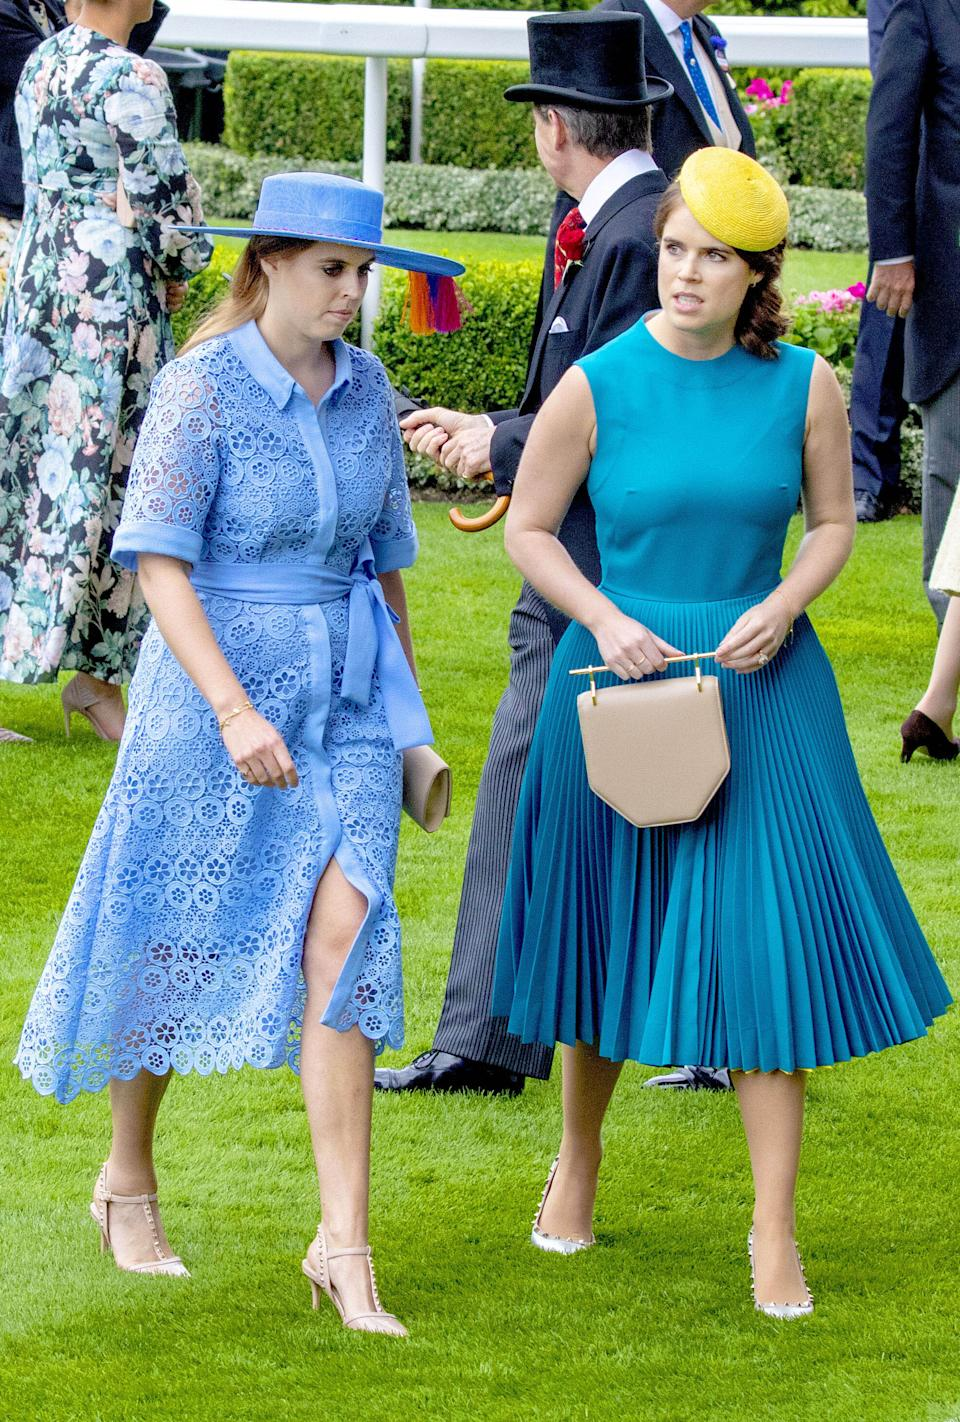 <p>Blue is a favourite of royal ladies at Ascot, and both Eugenie and Beatrice wore shades of it in 2019. Beatrice might want to check with Kate before she wears this dress - which was strikingly similar to the Duchess of Cambridge's top and skirt pictured earlier. (PPE/Nieboer/Sipa USA)</p>